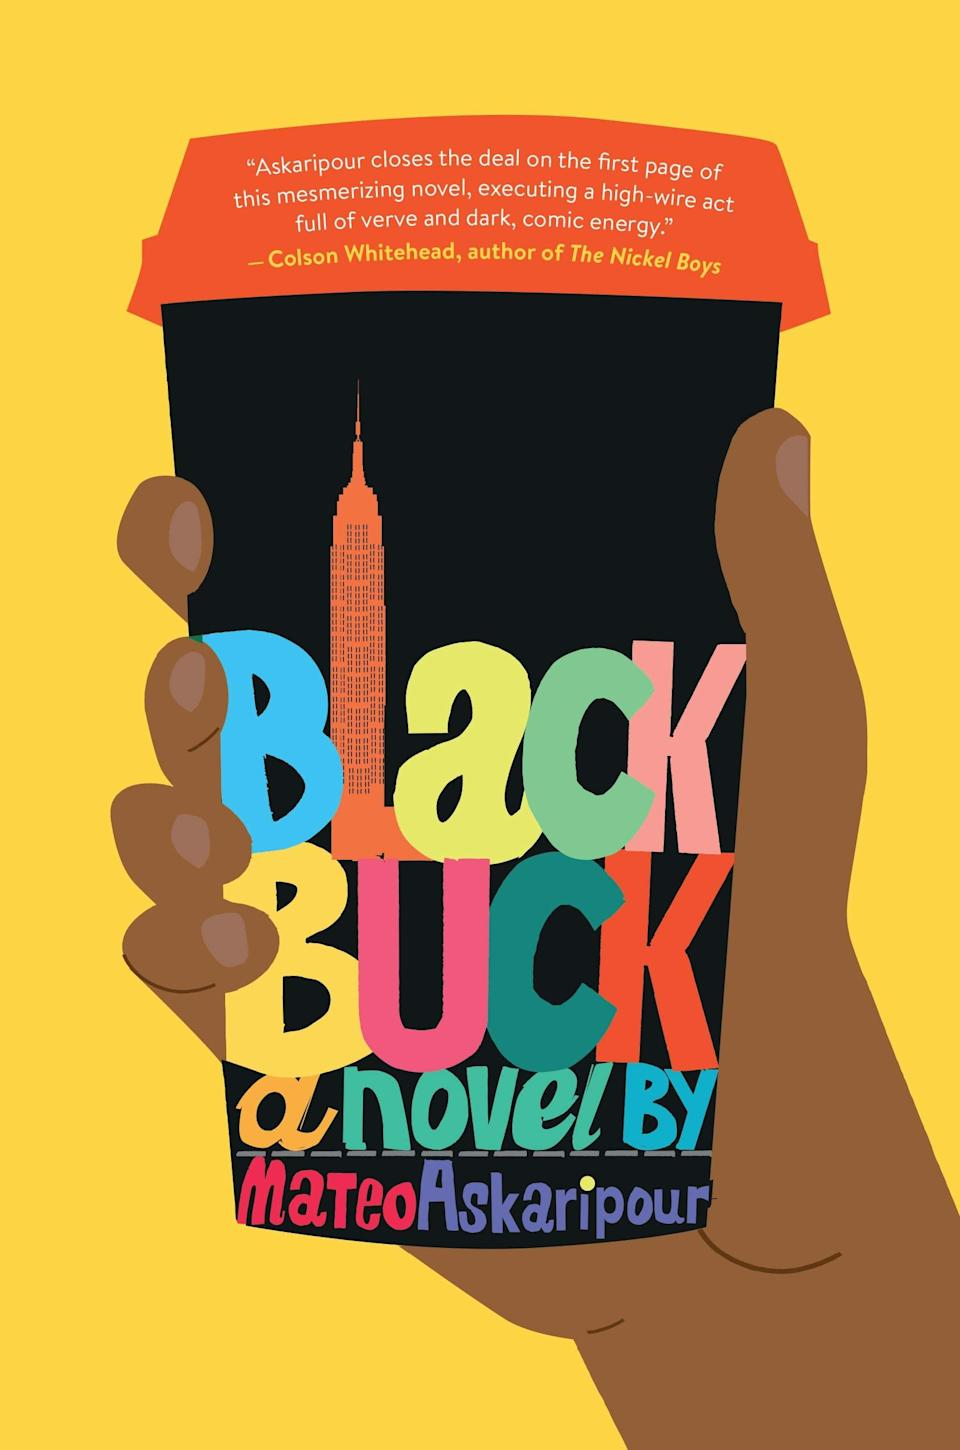 <p>Mateo Askaripour's <span><strong>Black Buck</strong></span> is set to send up the world of corporate America in this sharp debut about a young Black man who reinvents himself as a skilled salesman on a mission. At 20, Darren is living at home with his mom and working at a Starbucks when the CEO of New York's hottest tech startup offers him a job. Once he begins climbing the corporate ladder, Darren comes up with a plan to help young people of color enter the sales force from inside the system. </p> <p><em>Out Jan. 5</em></p>